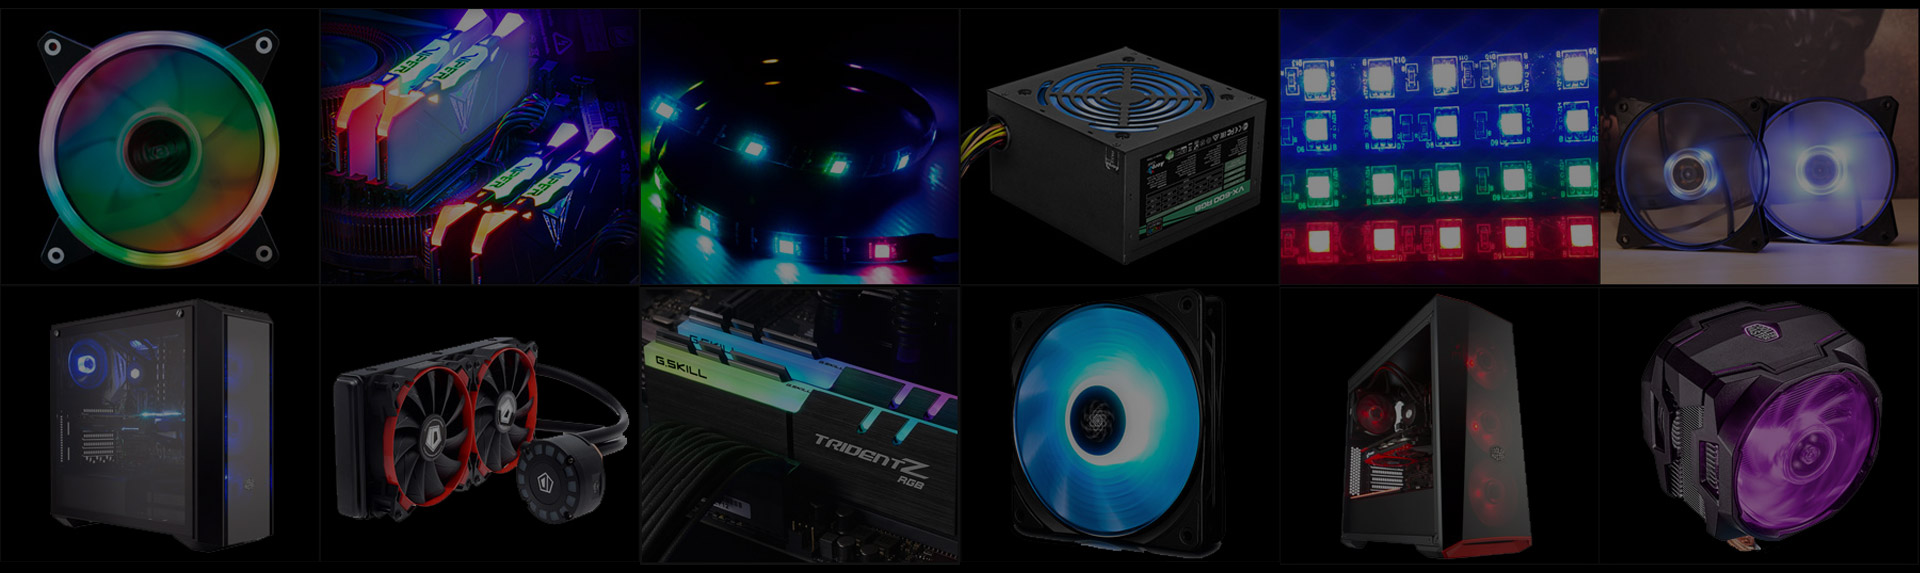 All the compatible RGB LED products from memory sticks to power supplies and cases